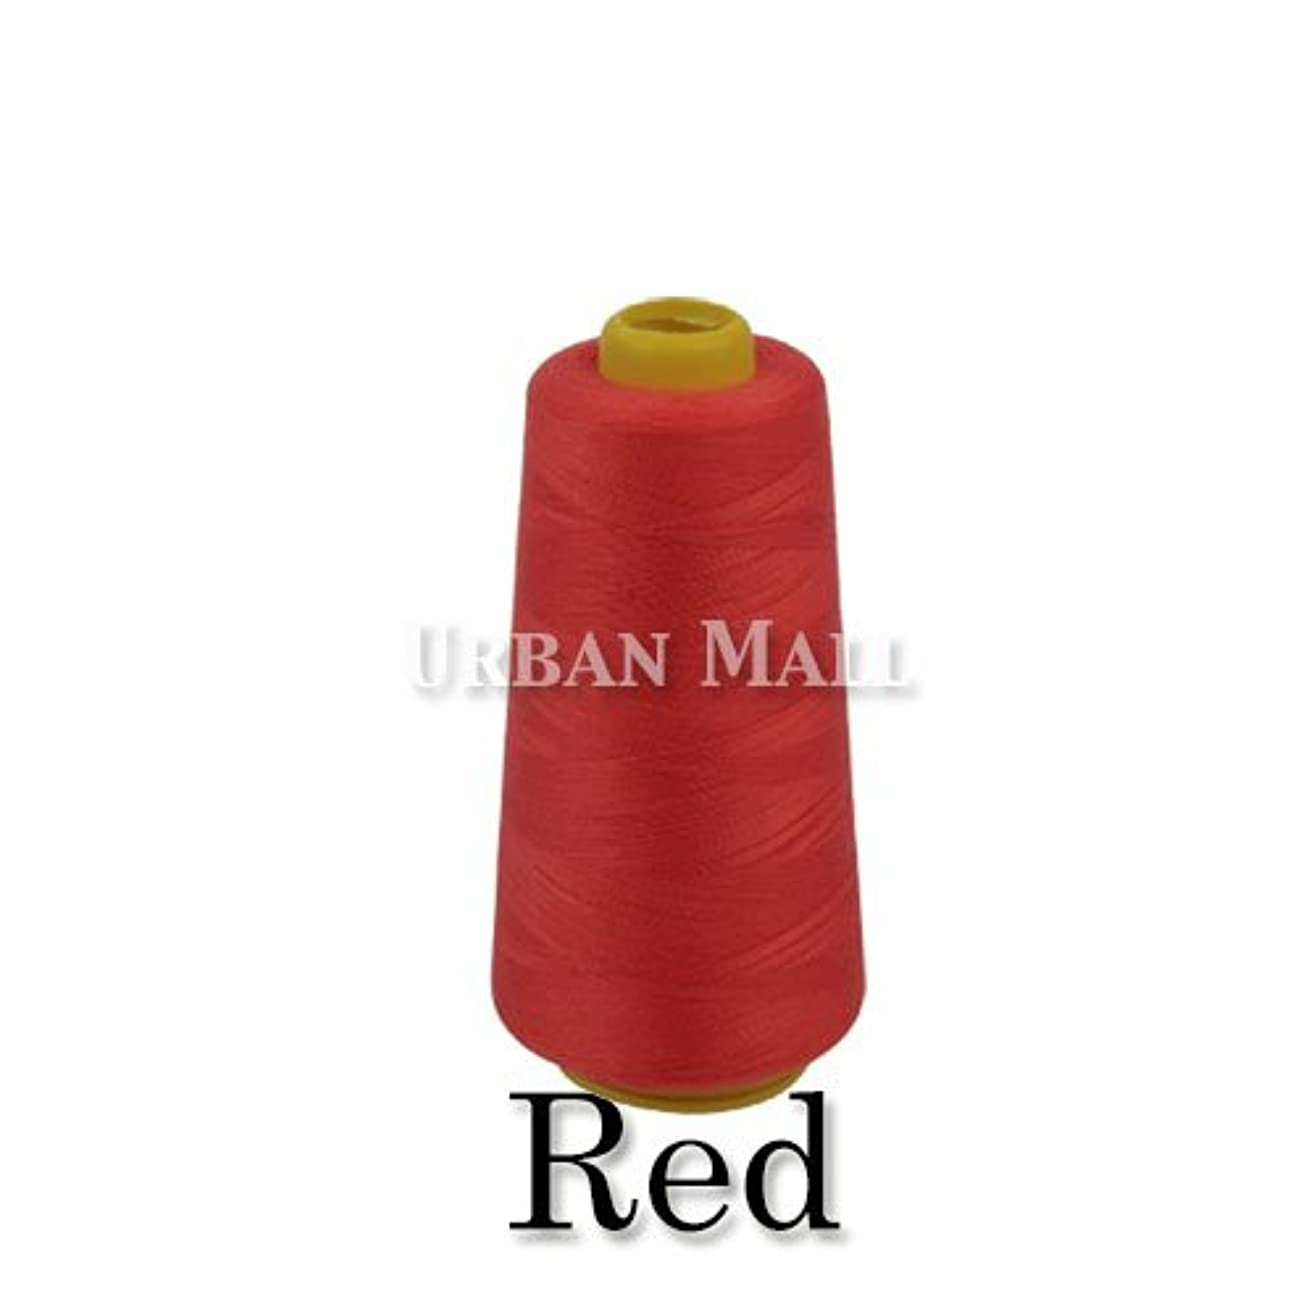 6000 Yards Red Sewing Thread All Purpose 100% Spun Polyester Spools Overlock Cone (Upholstery, Canvas, Drapery, Beading, Quilting) (Red)